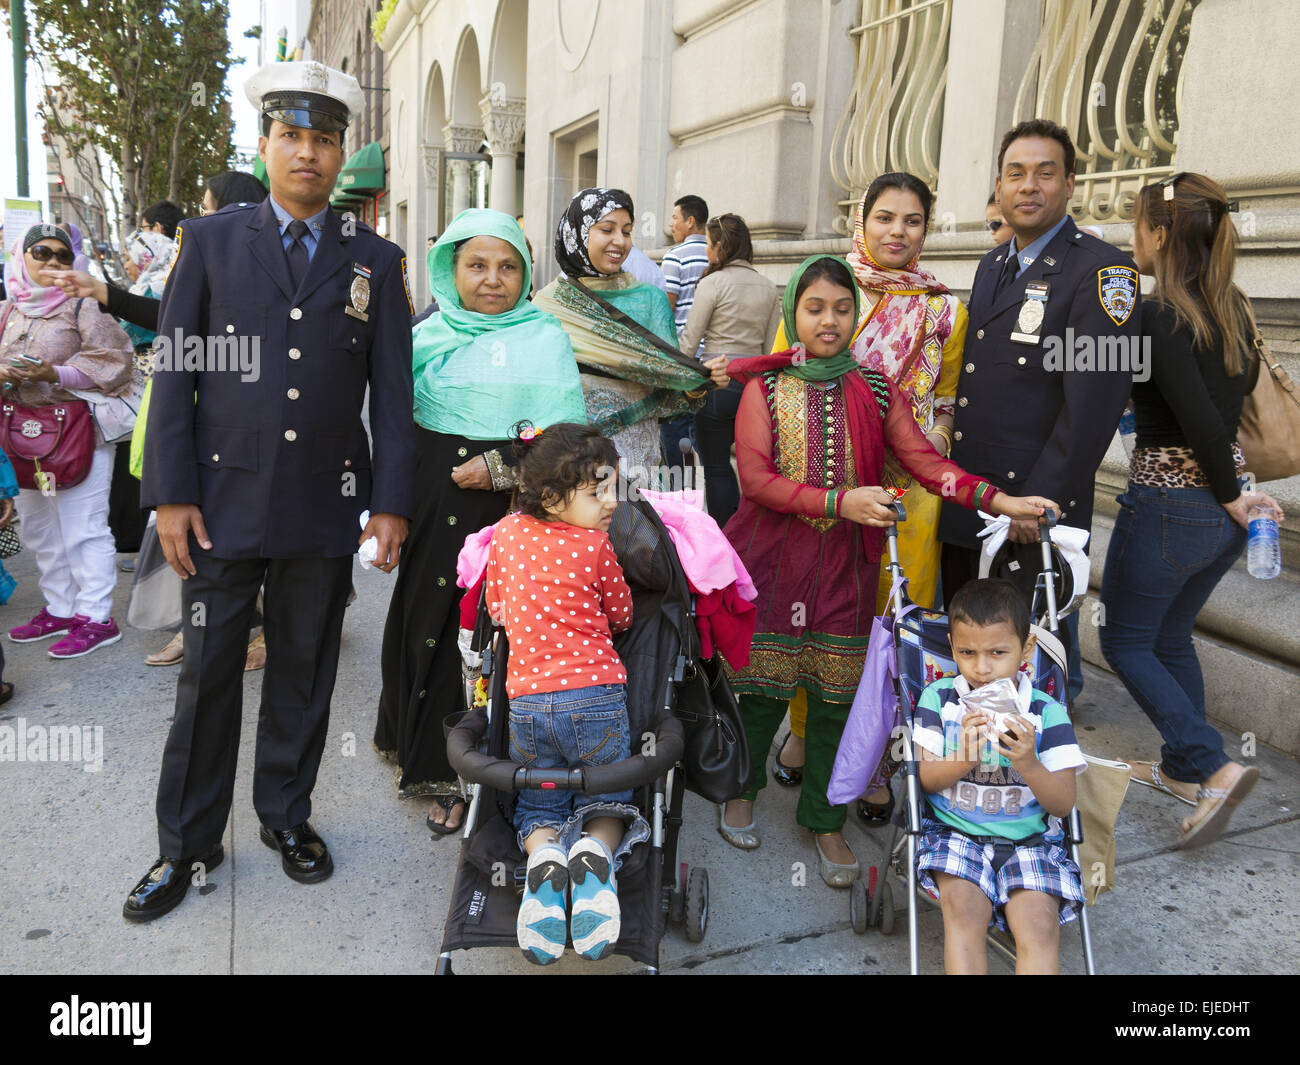 Muslim NYPD police officers and their families at the Muslim American Day Parade n New York City, 2014. - Stock Image